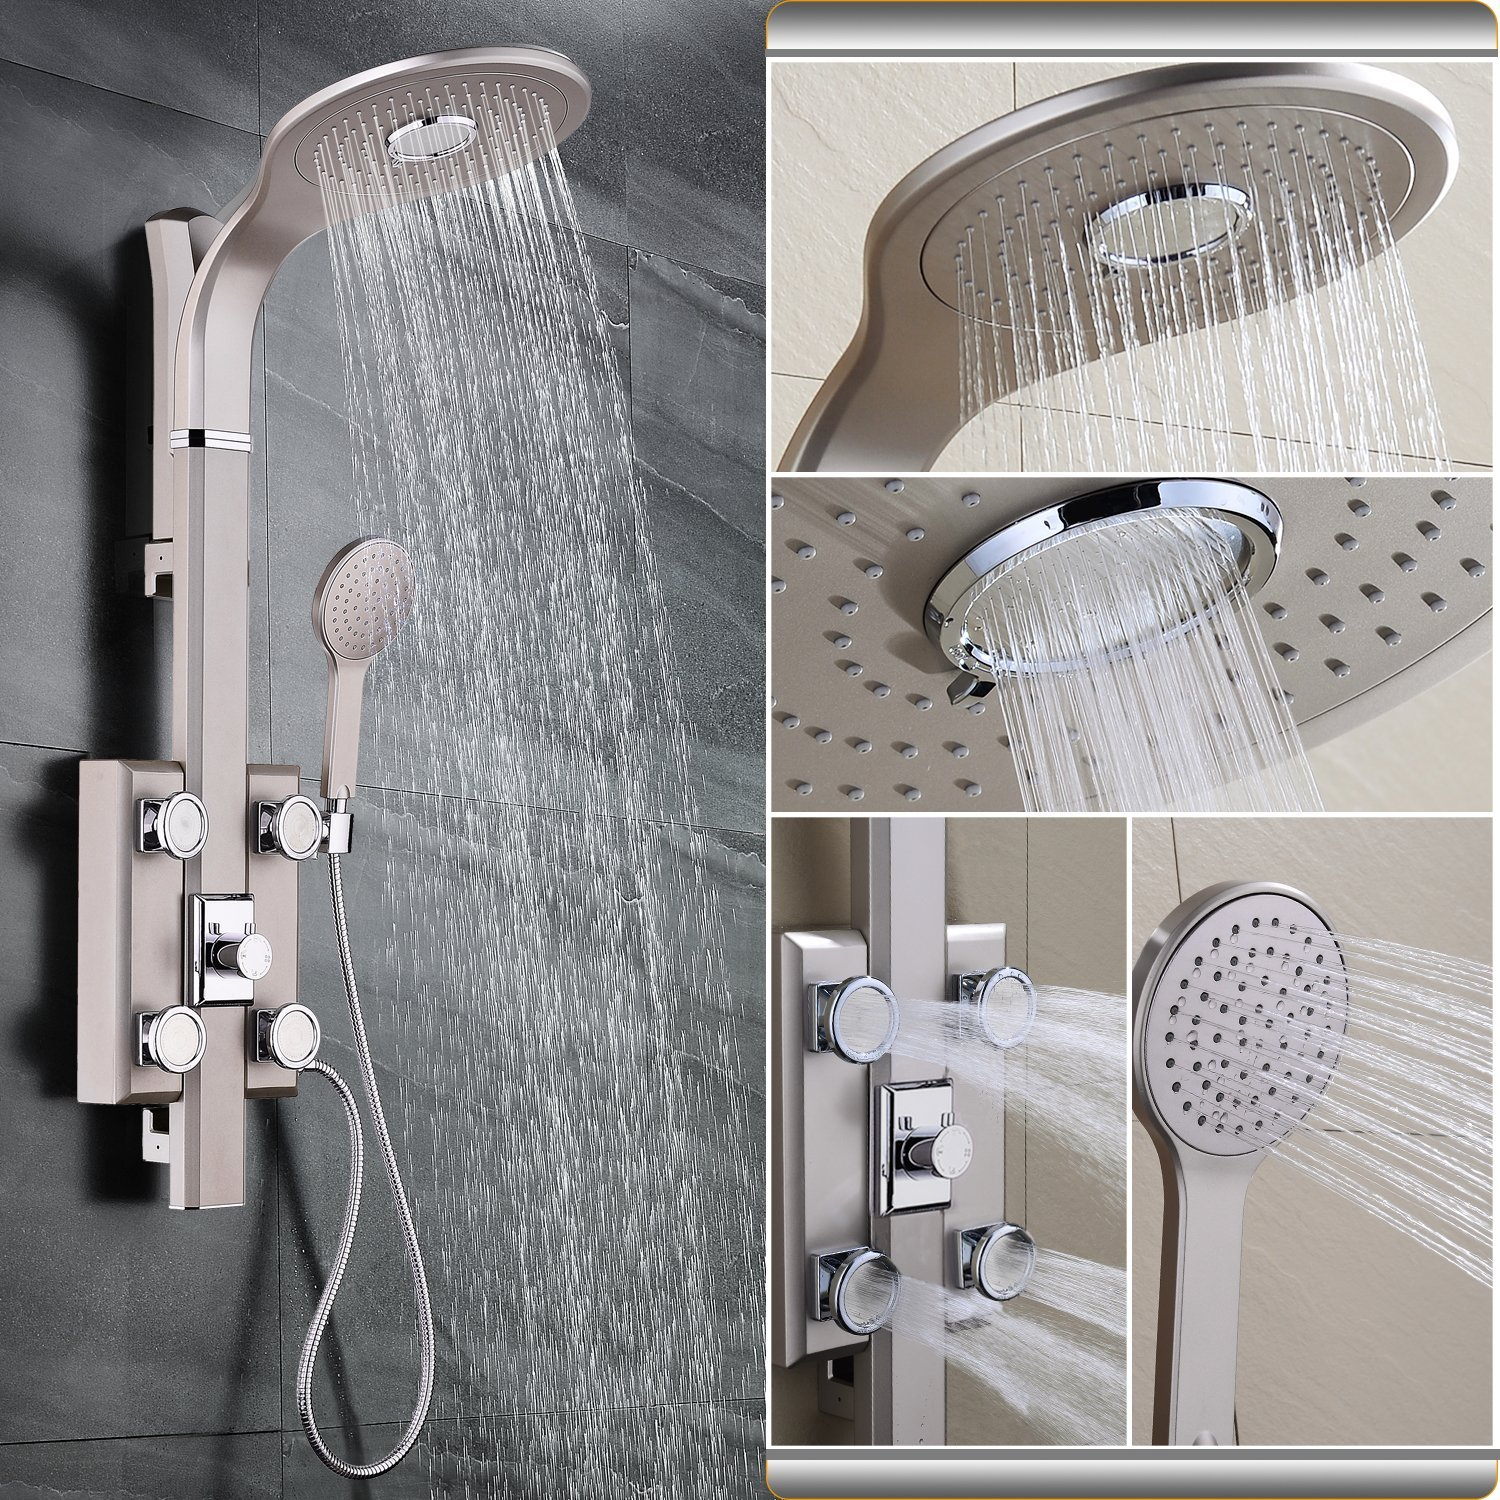 High Pressure Rain Shower SR Sun Rise Four-Function Shower Panel with Rain Shower Aluminum-Magnesium Alloy High Temperature Taking Process White Handheld Shower and Four Massage Jets